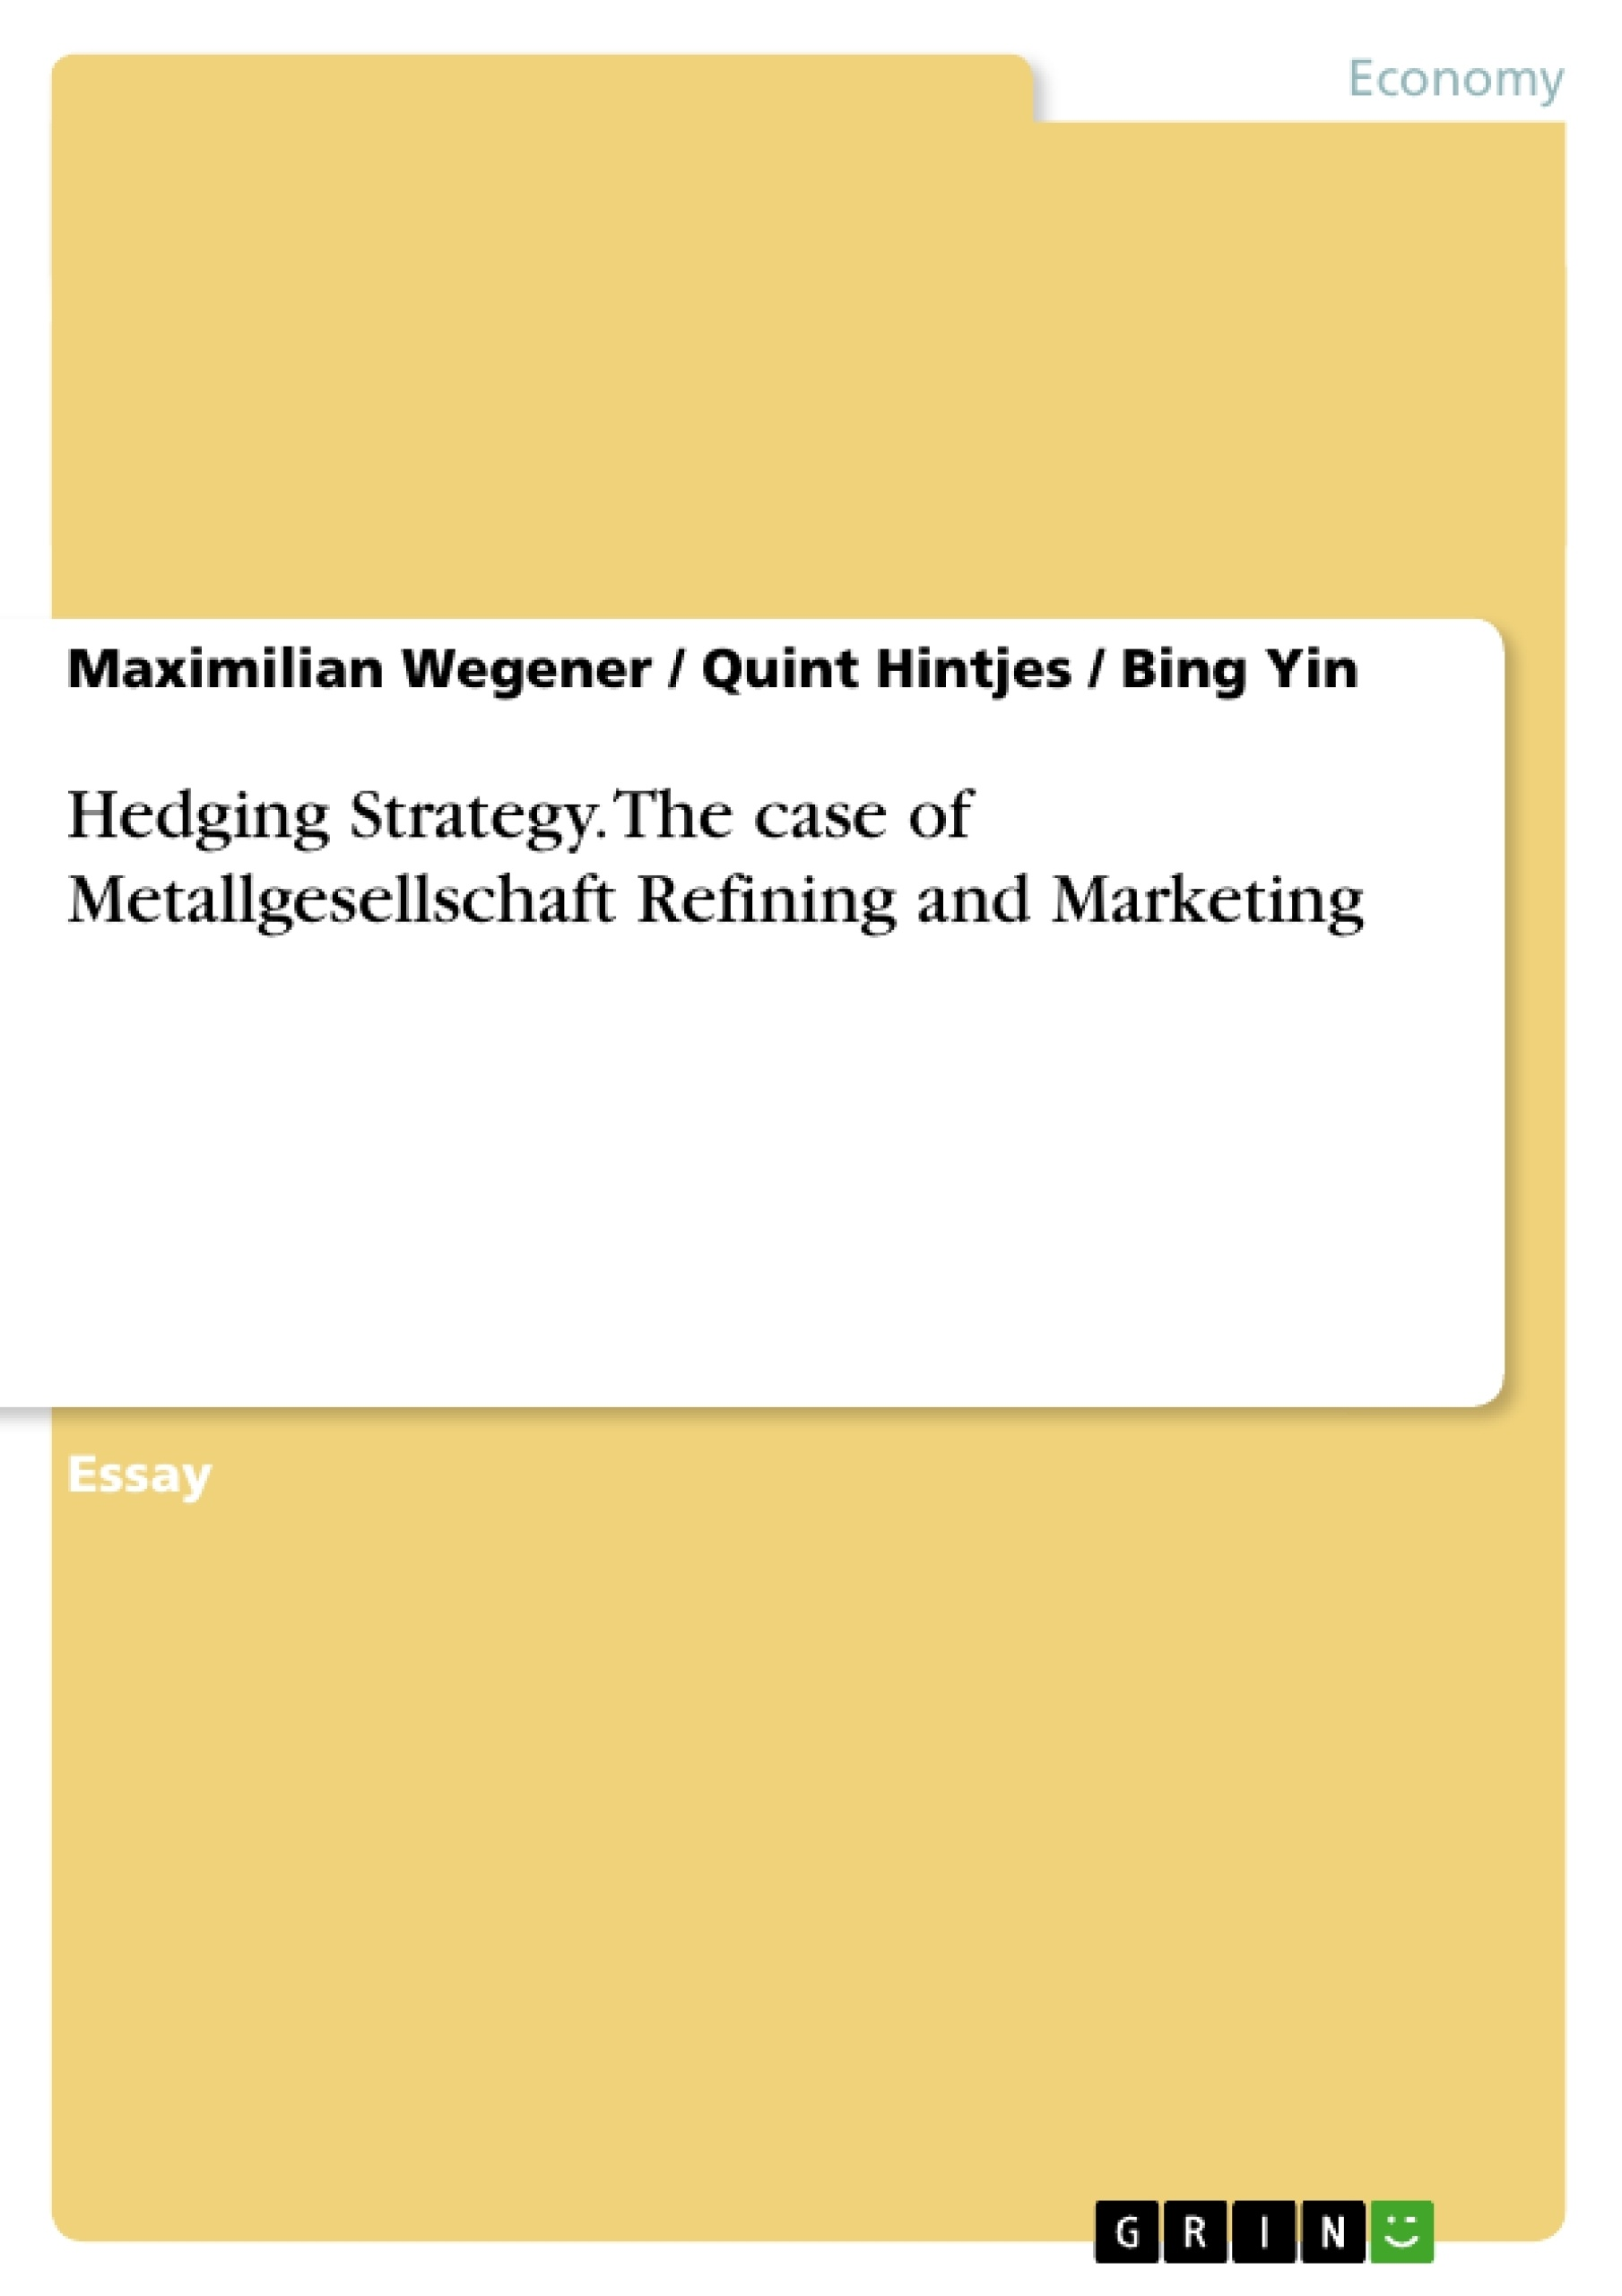 Title: Hedging Strategy. The case of Metallgesellschaft Refining and Marketing